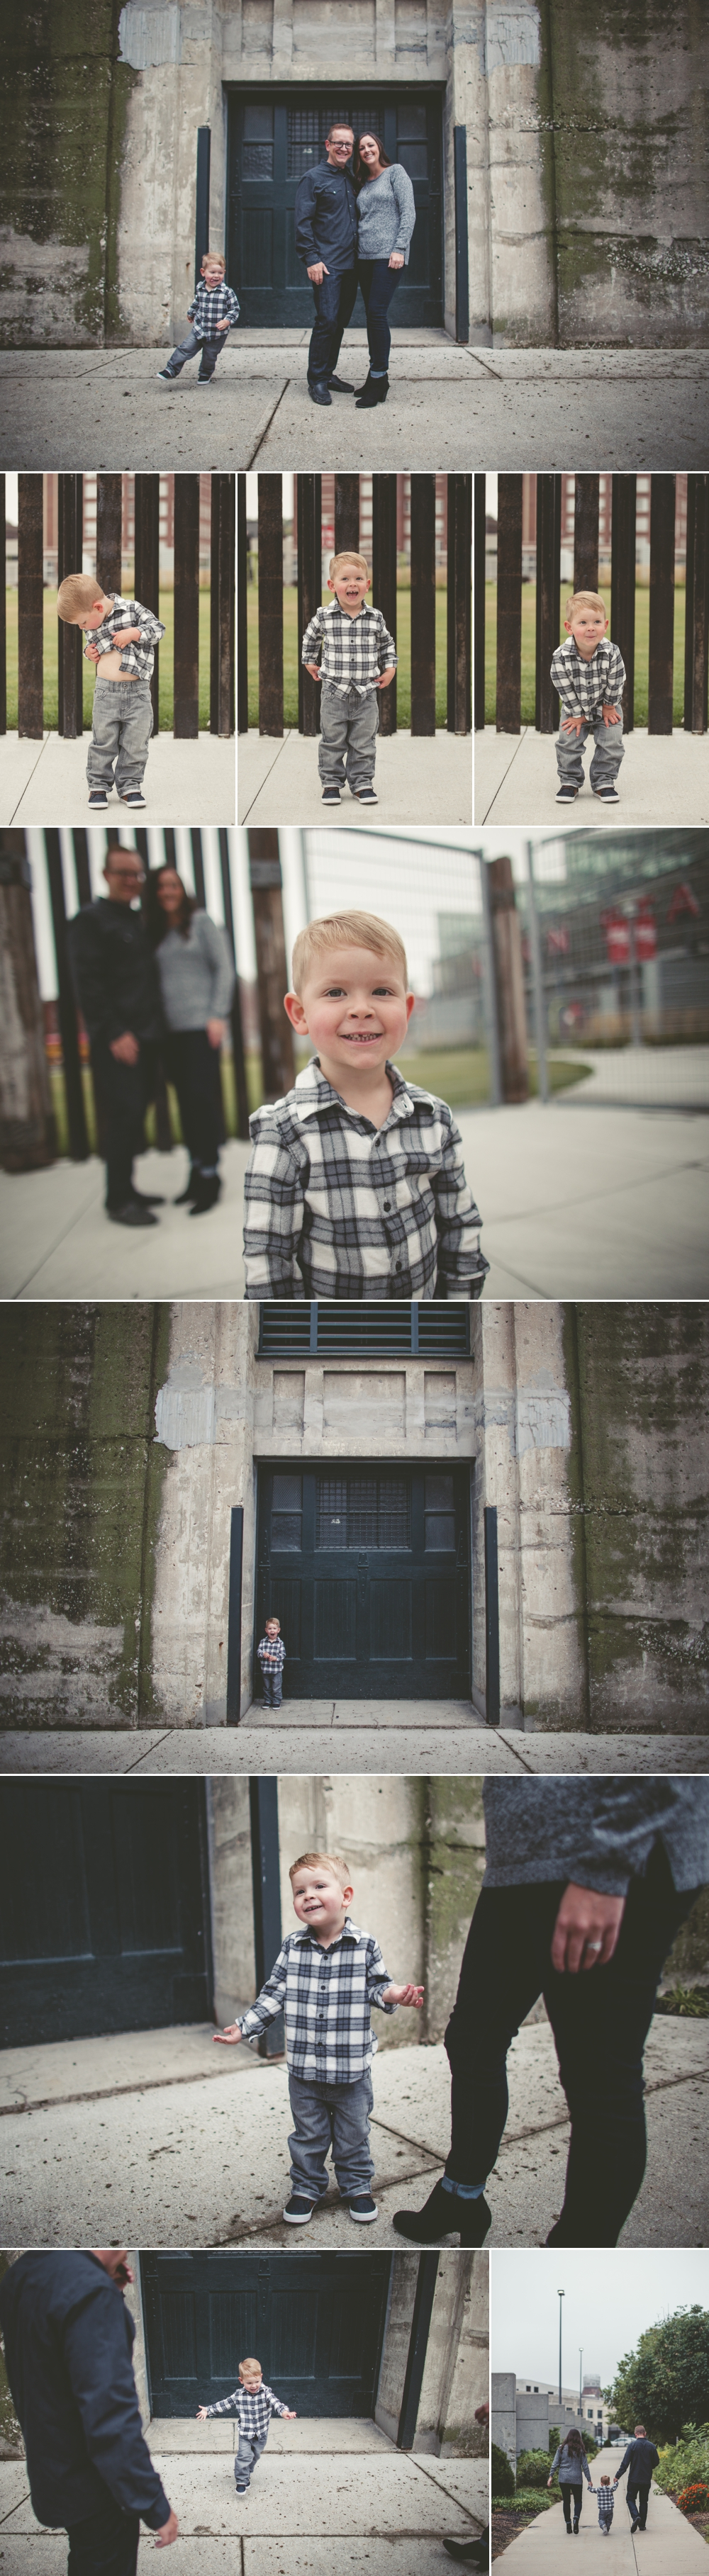 jason_domingues_photography_kansas_city_photographer_family_mini_sessions_union_station_kc_0001.JPG